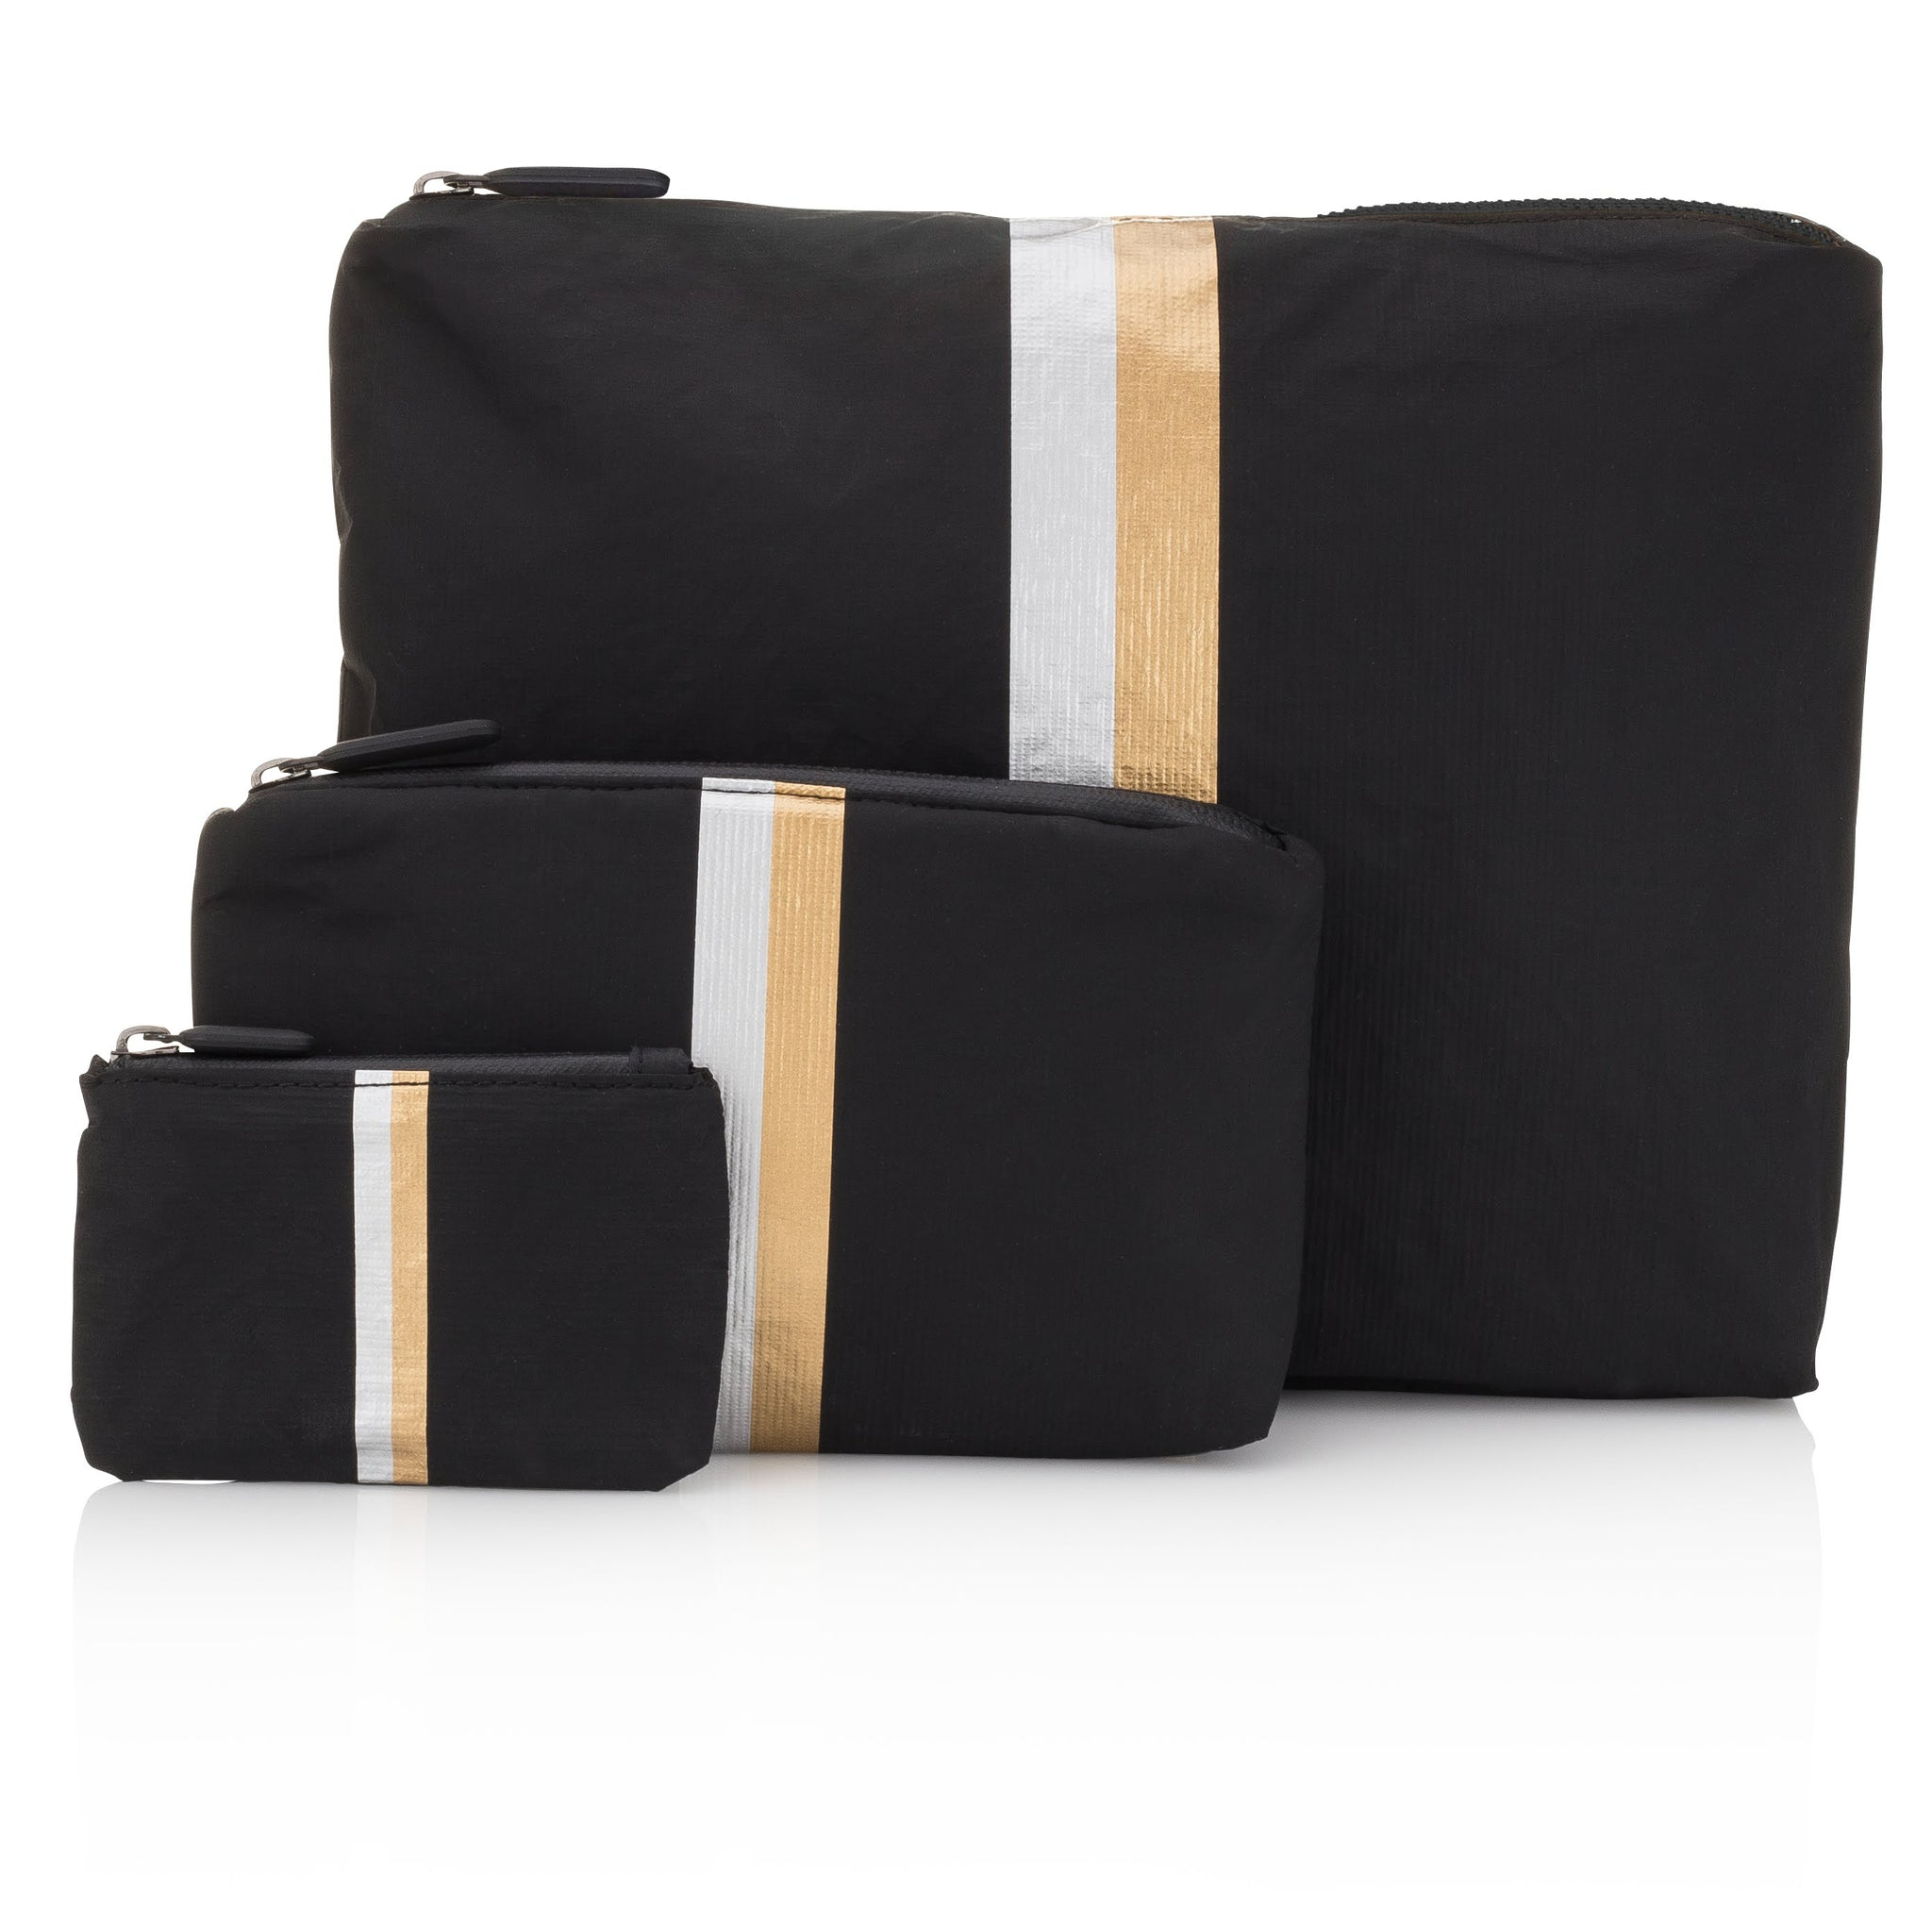 Travel Bag Set - Set of Three Packs - Hi Love Black with Metallic Silver and Gold Stripes